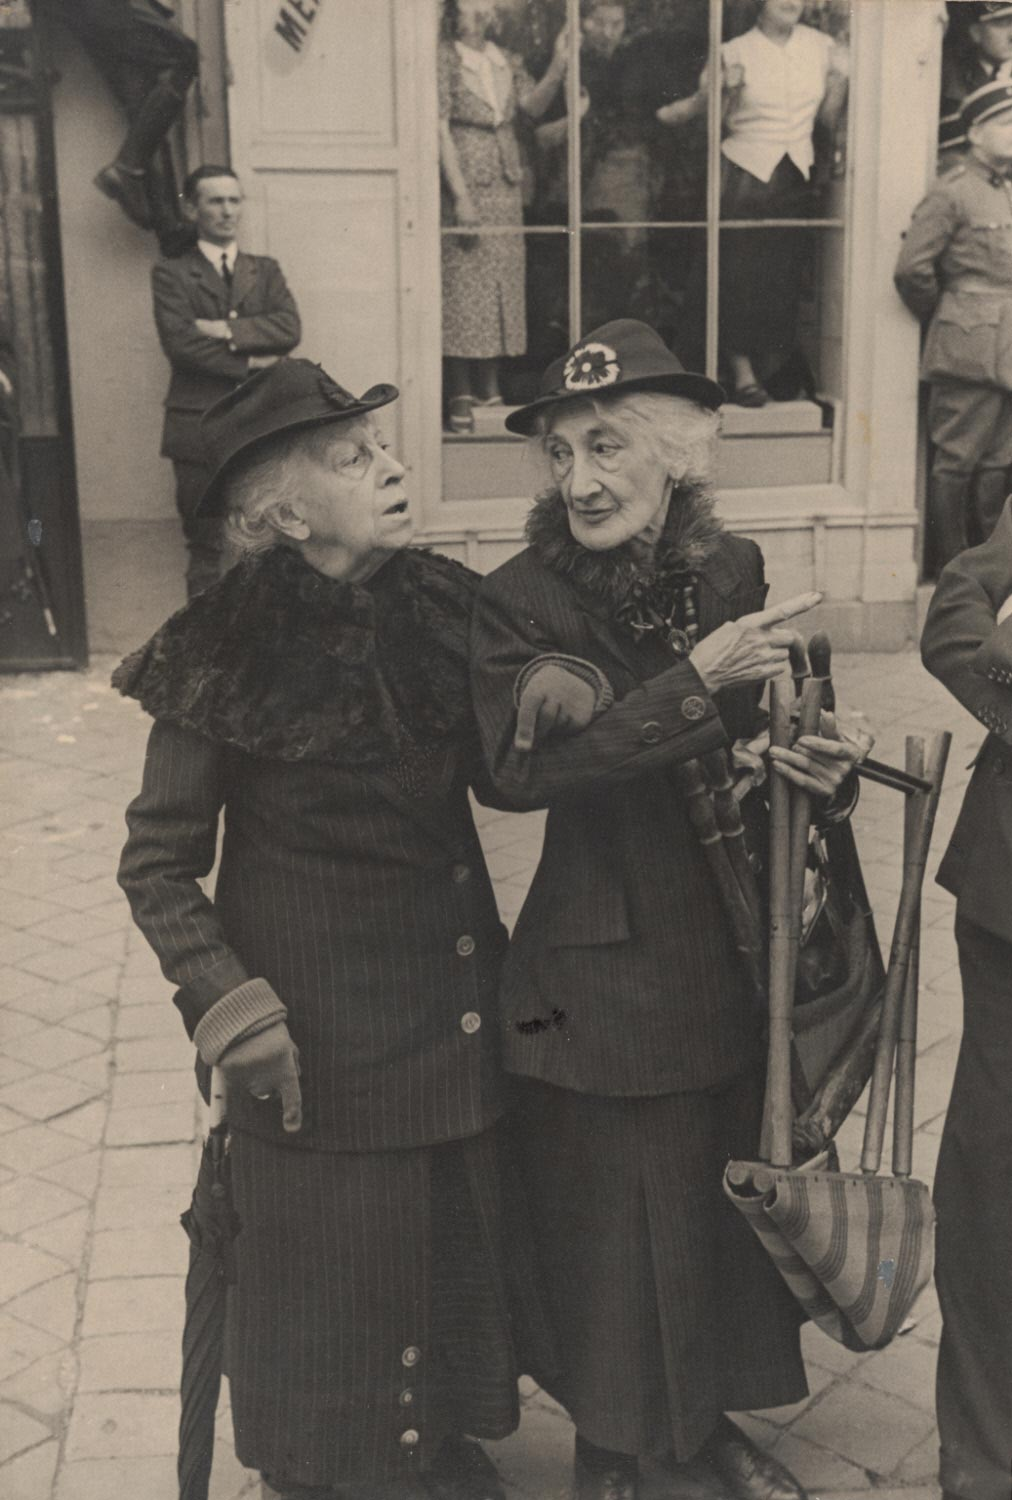 During the Visit of George VI of England to Versailles